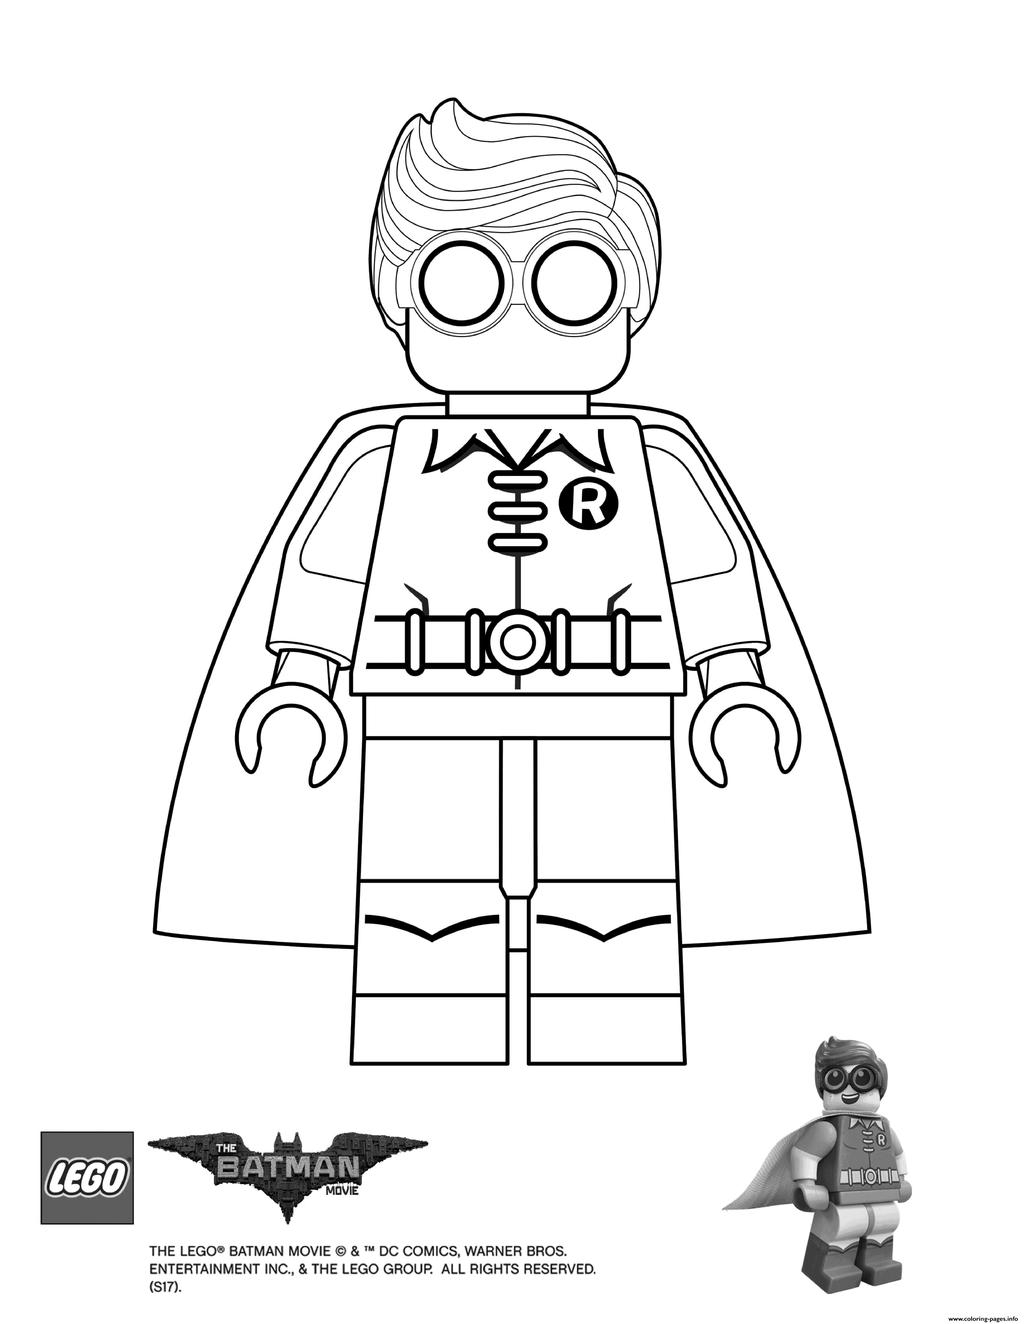 Lego Movie Color Pages Coloring Pages Lego Movie Activity Pagestable Kids Free Coloring